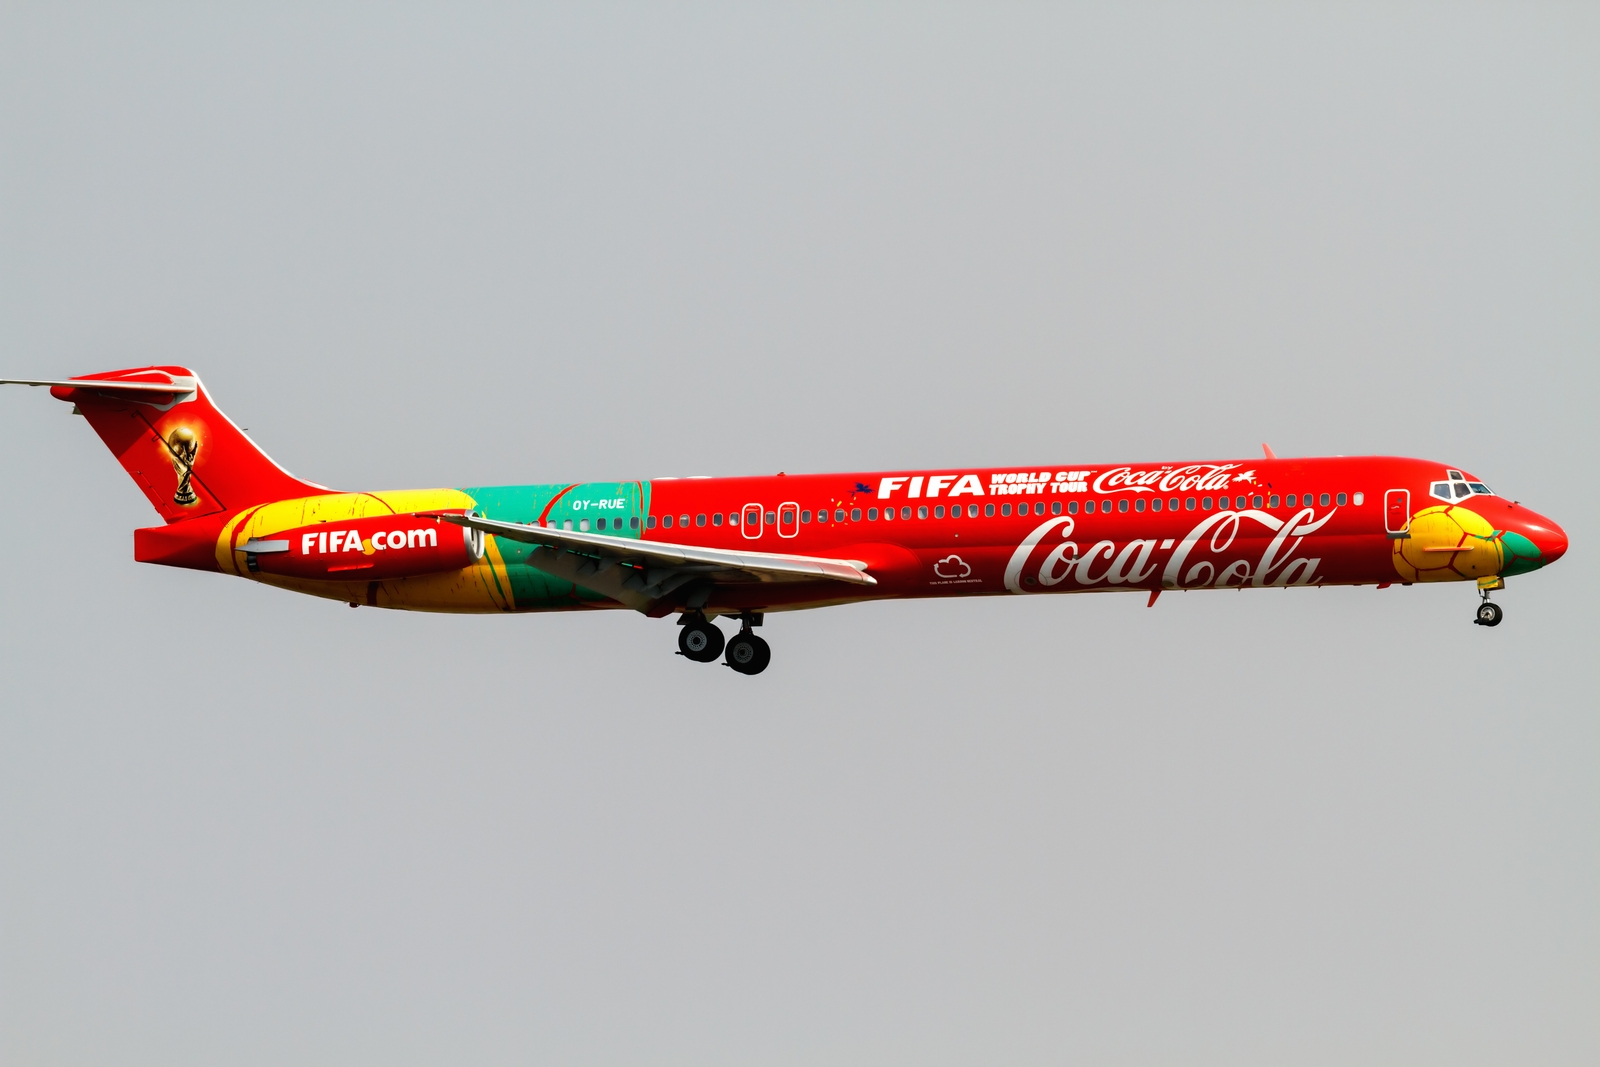 A McDonnell Douglas MD-83 in Japan during the 2014 World Cup Trophy Tour. Photo by ken H; Flickr